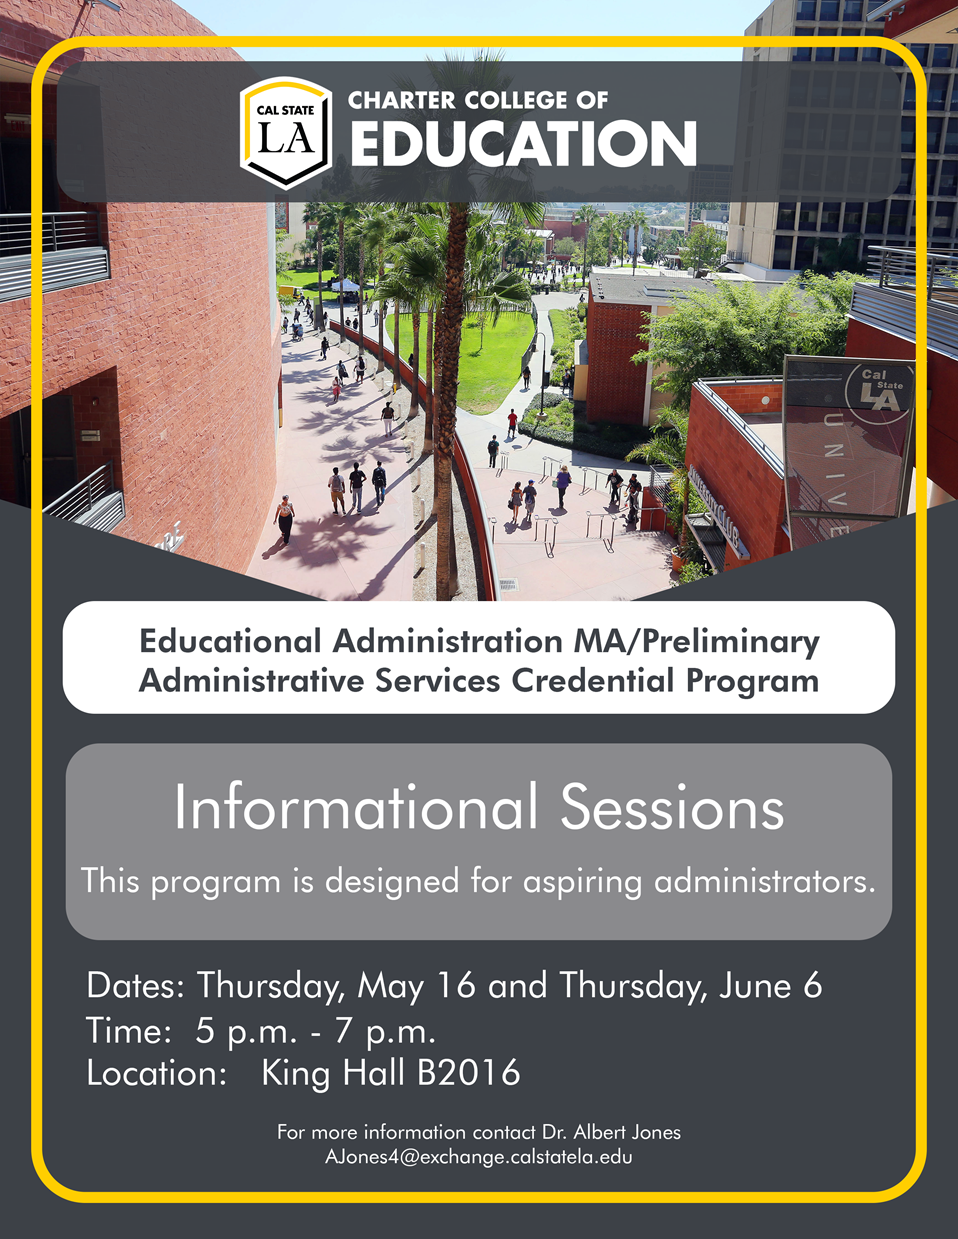 Educational Administration Information Sessions